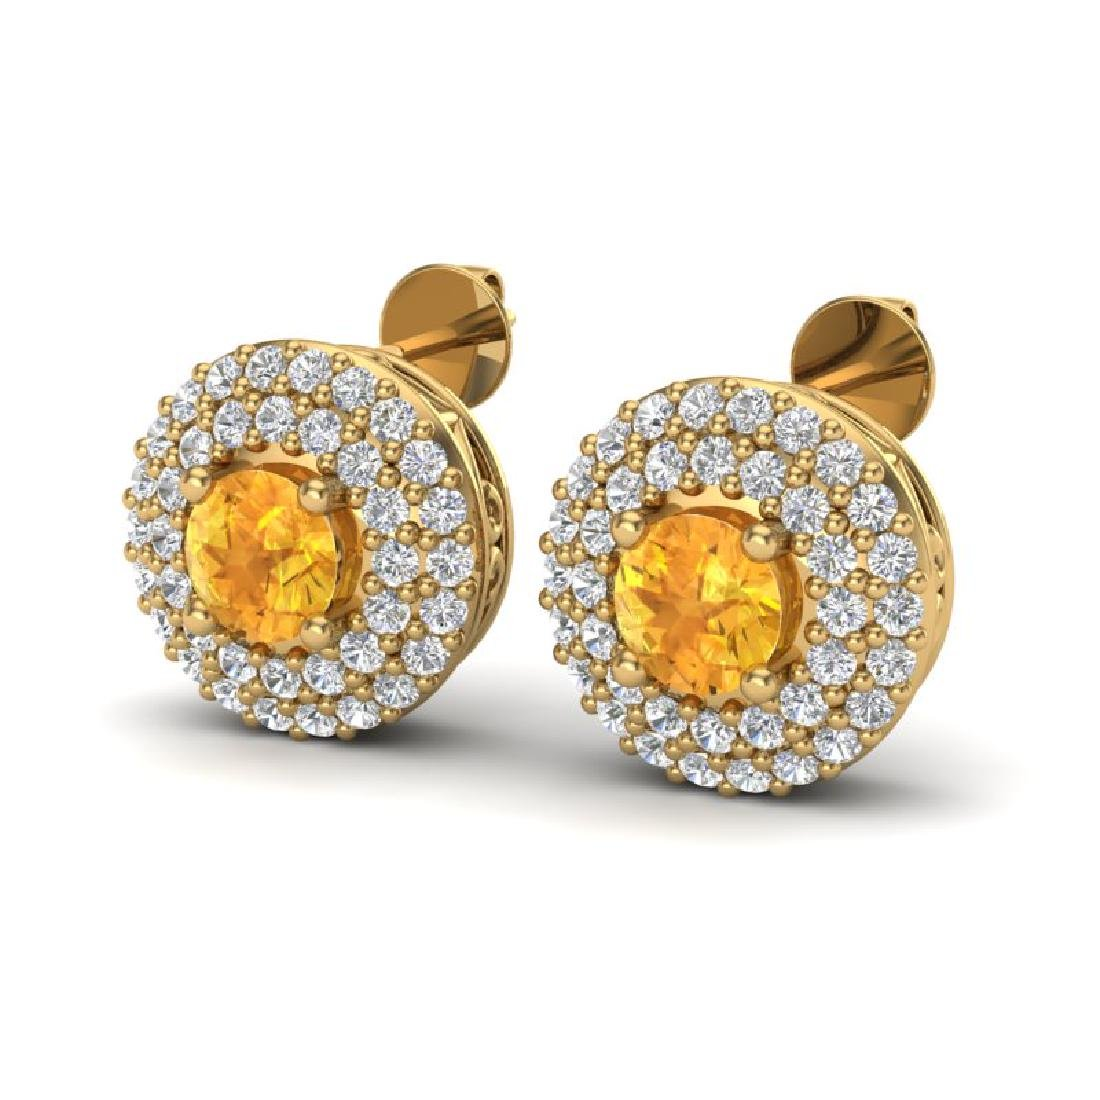 1.25 CTW Citrine & Micro Pave VS/SI Diamond Earrings